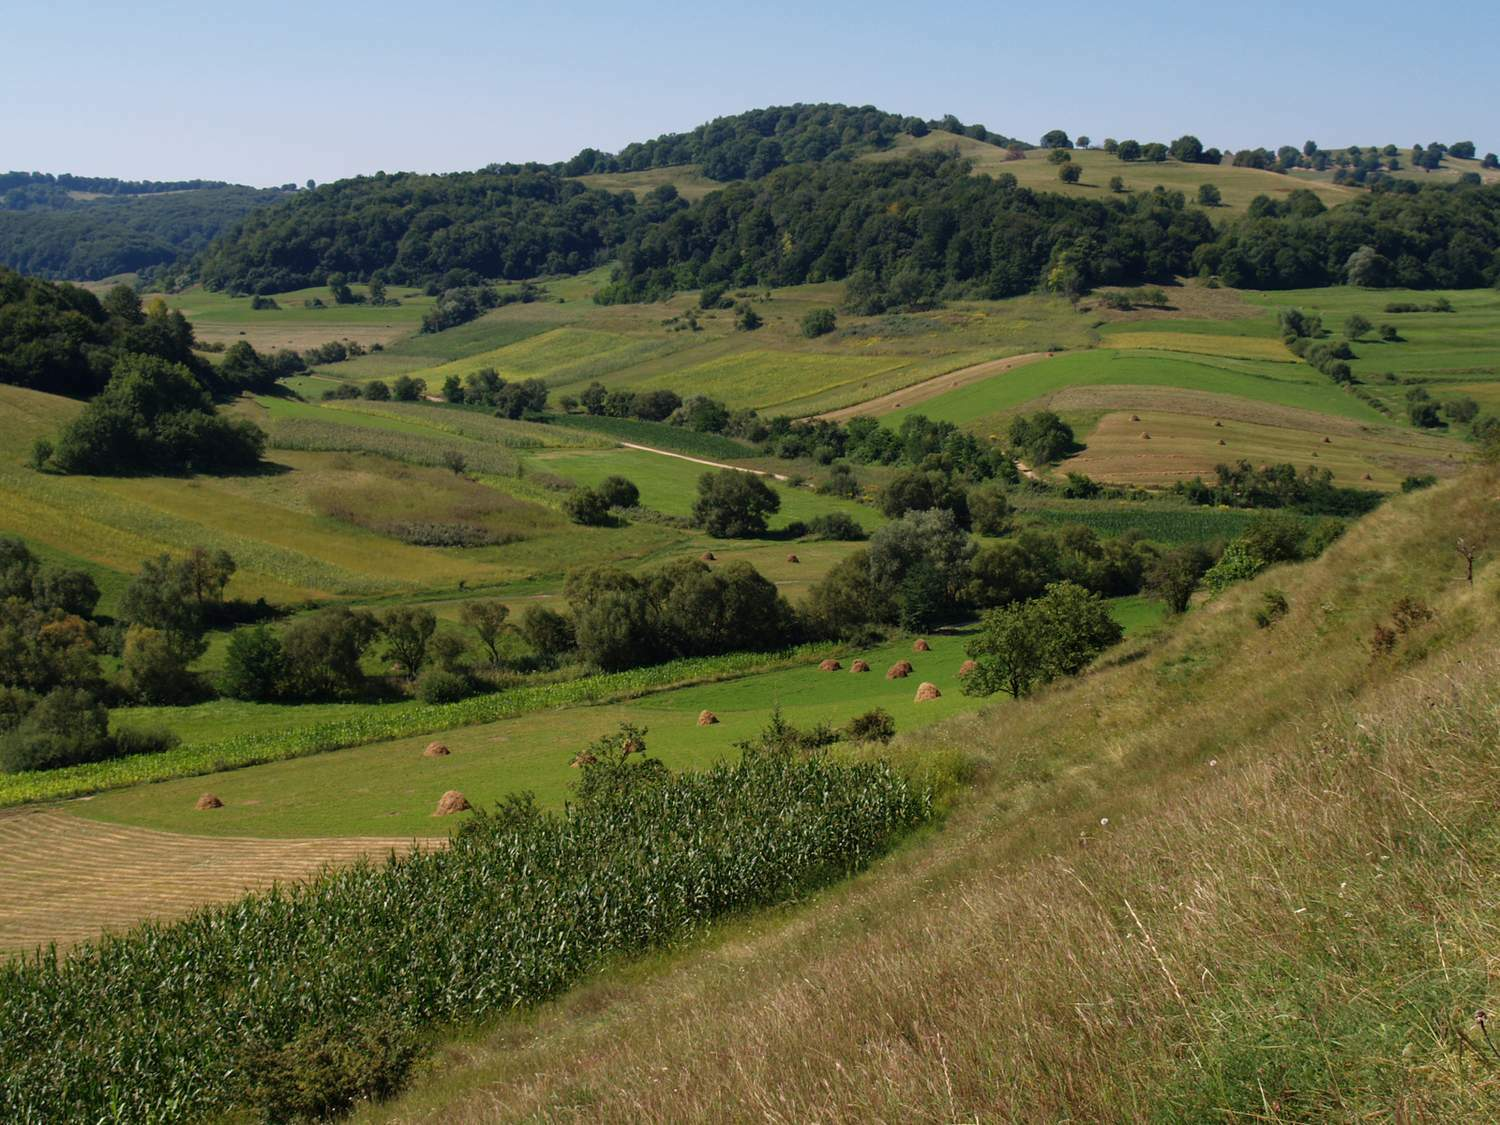 According to the authors, a landscape mosaic of natural habitats and small-scale and diverse cultivated areas are the key to promoting biodiversity on a large scale in both conventional and organic agriculture.